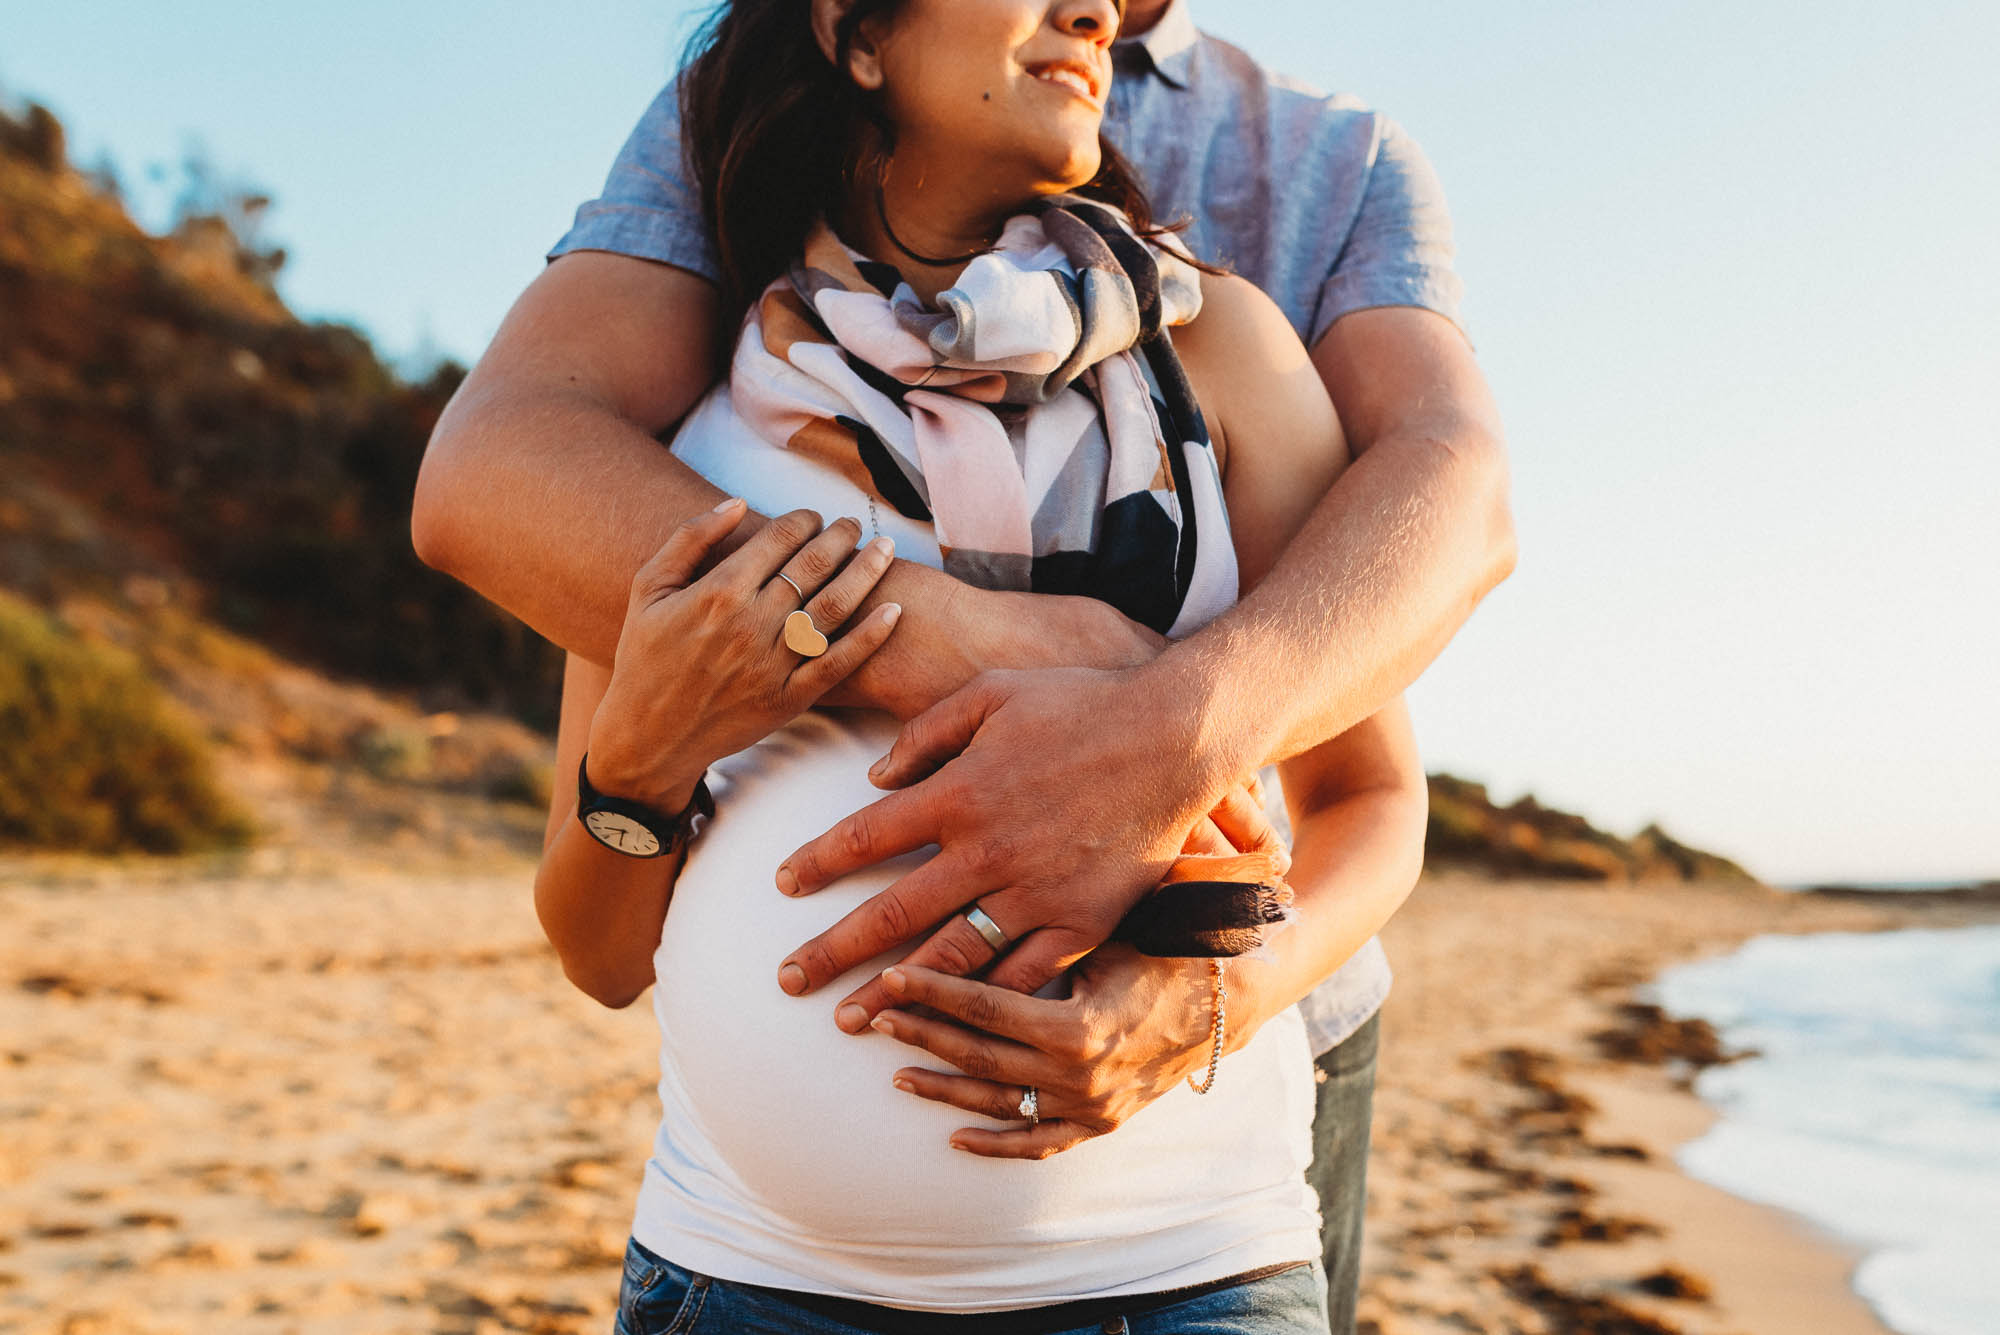 melbourne_maternity_photographer_jenny_rusby_photography_couple_hugging_baby_bump_together_at_the_beach_at_sunset